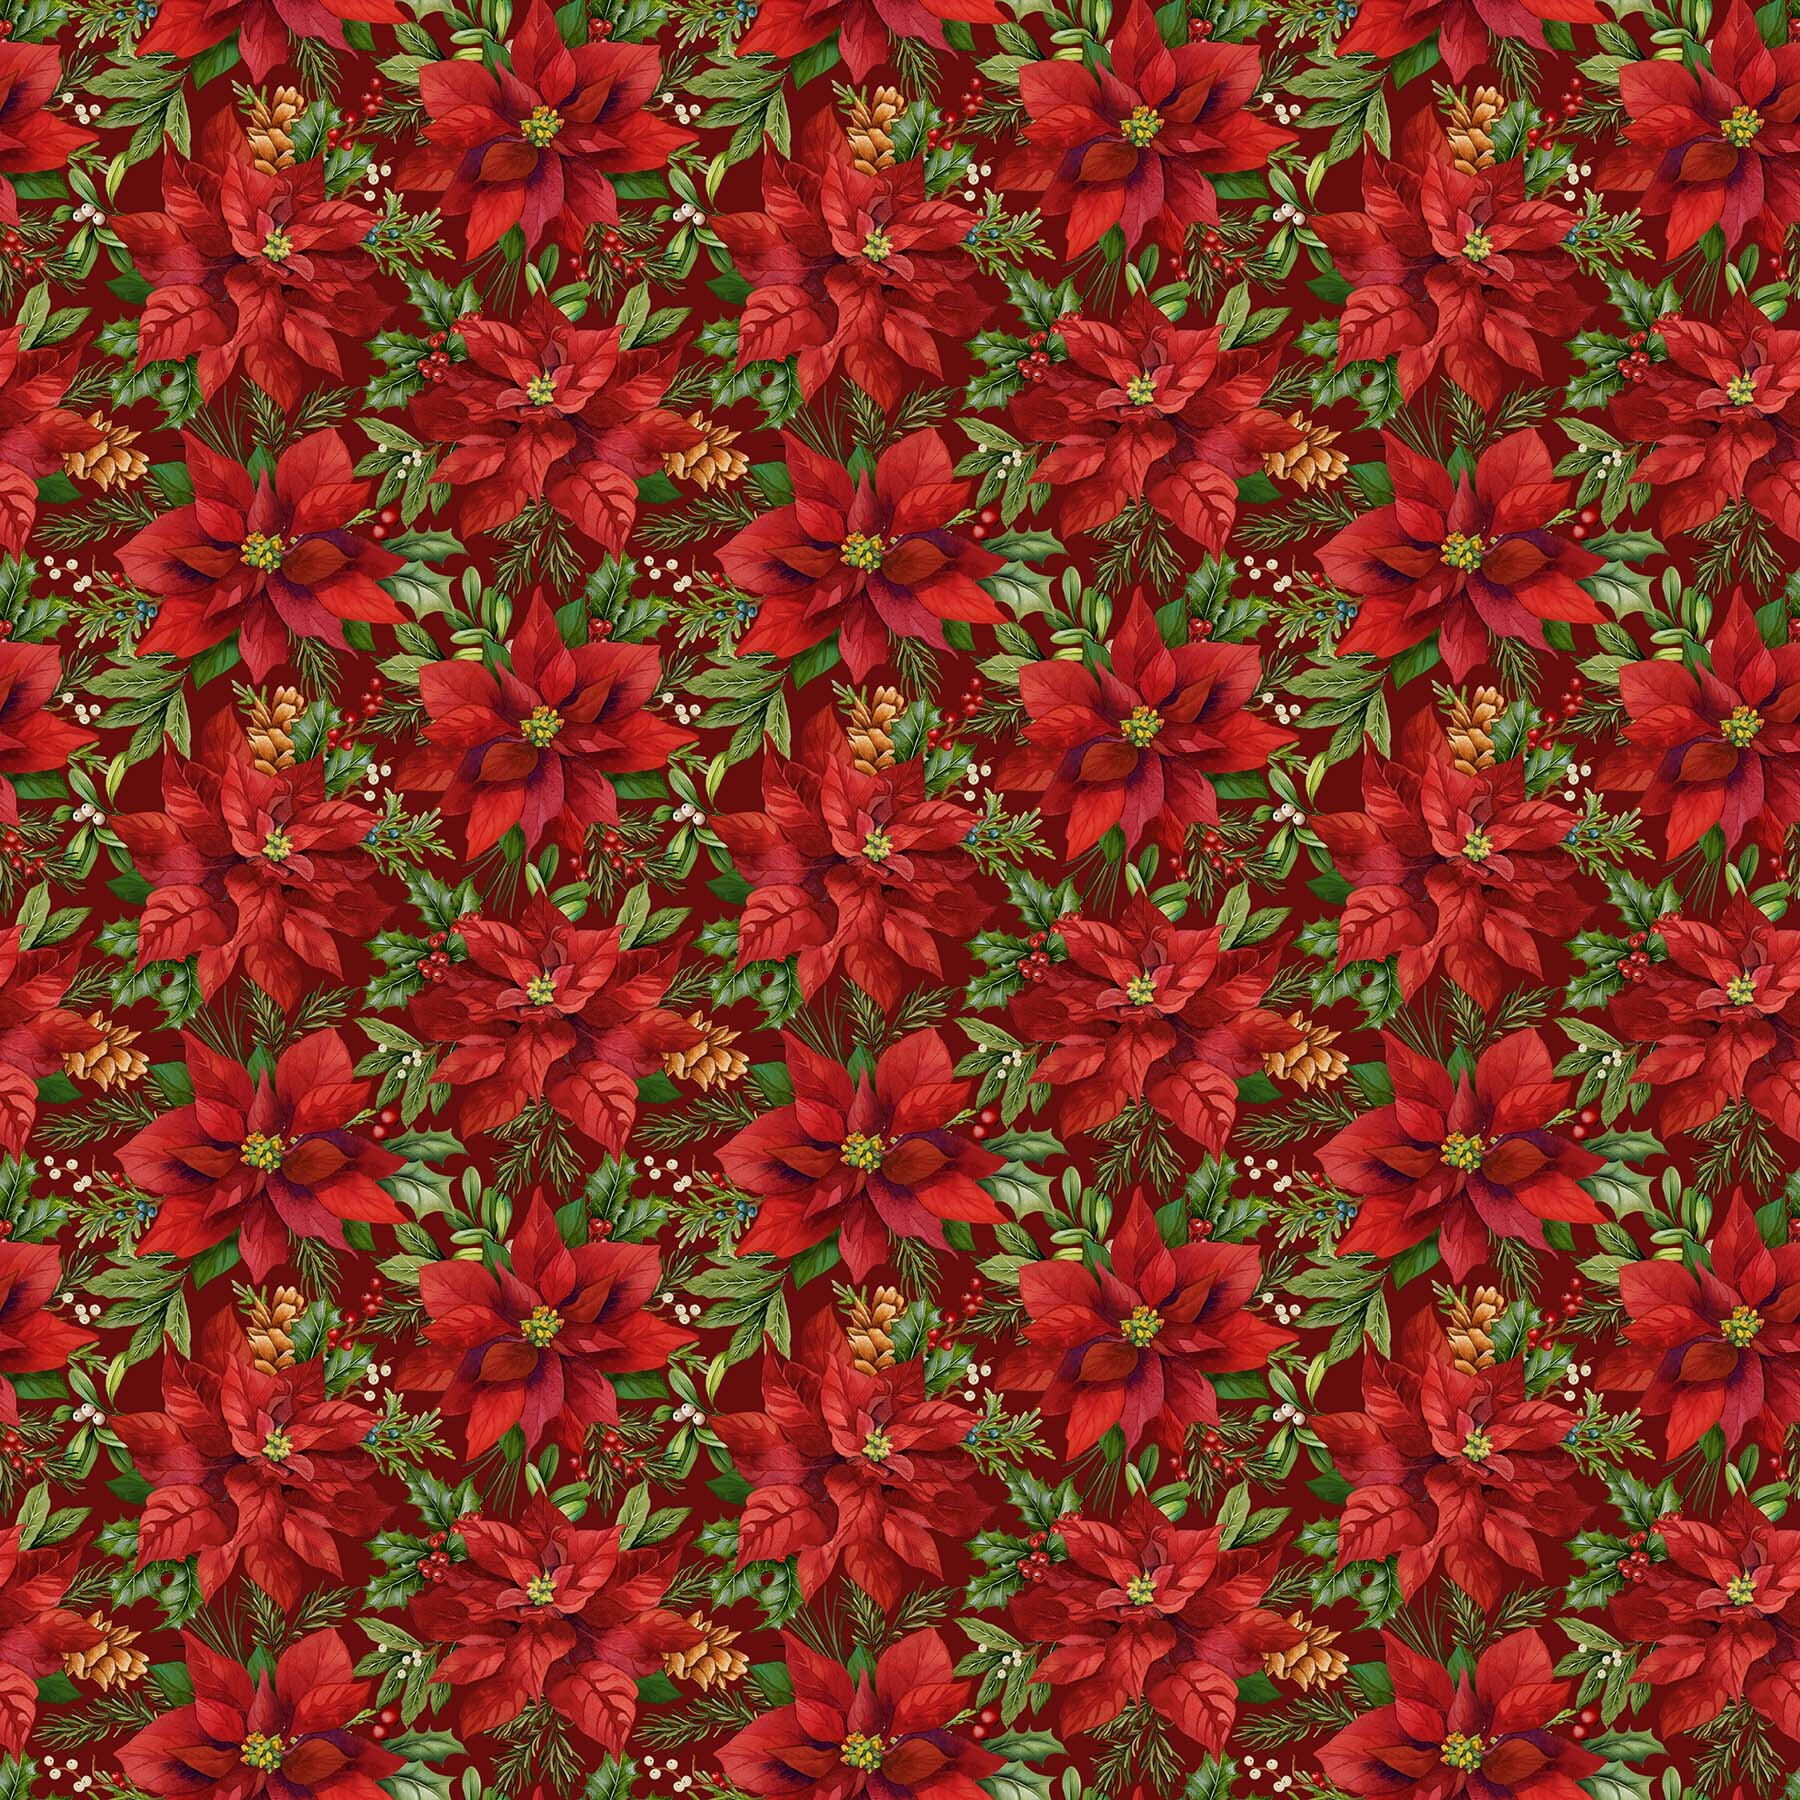 Old Time Christmas - Poinsettias on Red - 1/2m cut 57958